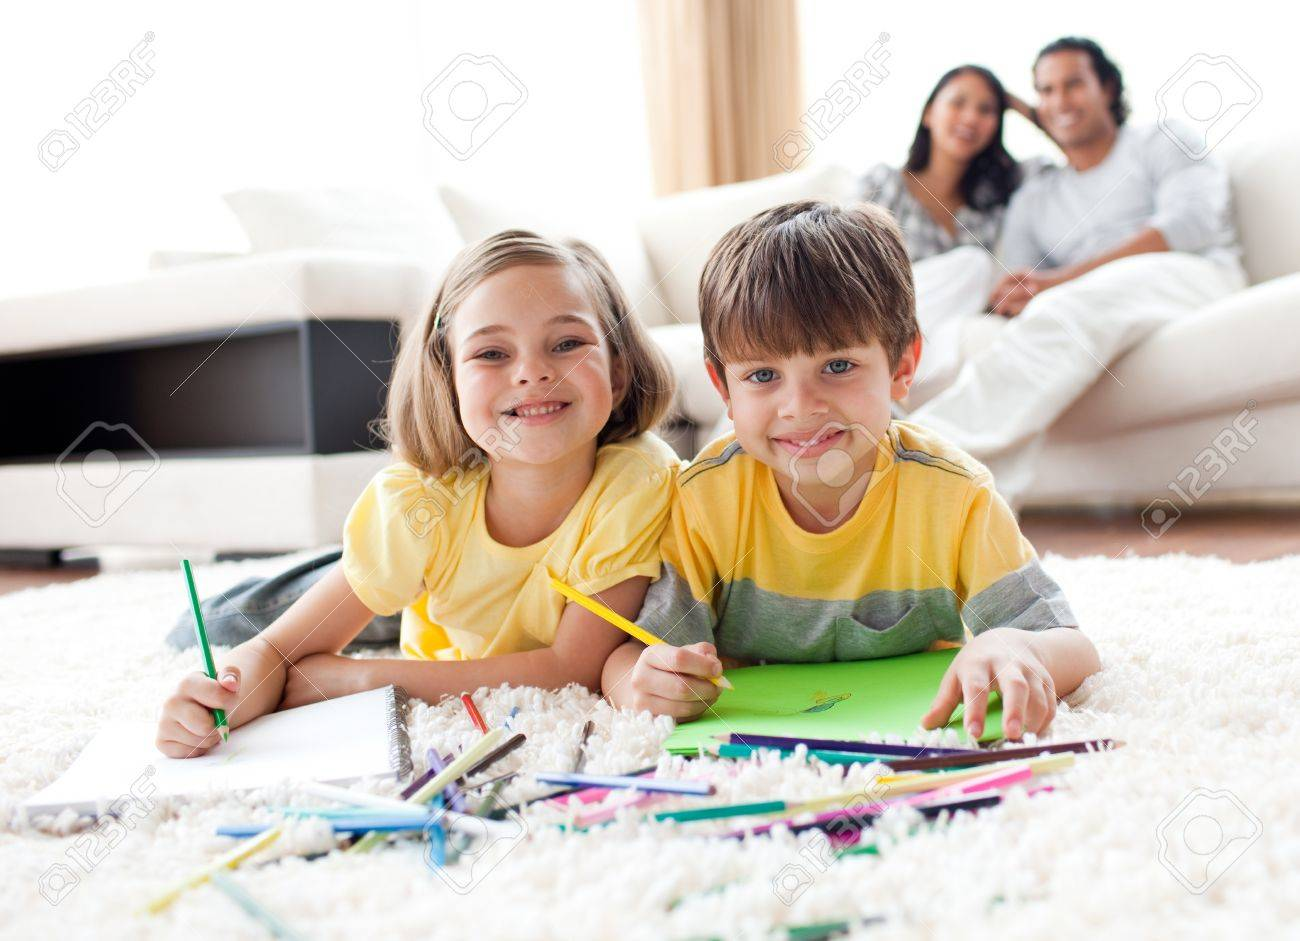 Portrait of cute siblings drawing lying on the floor Stock Photo - 10095980